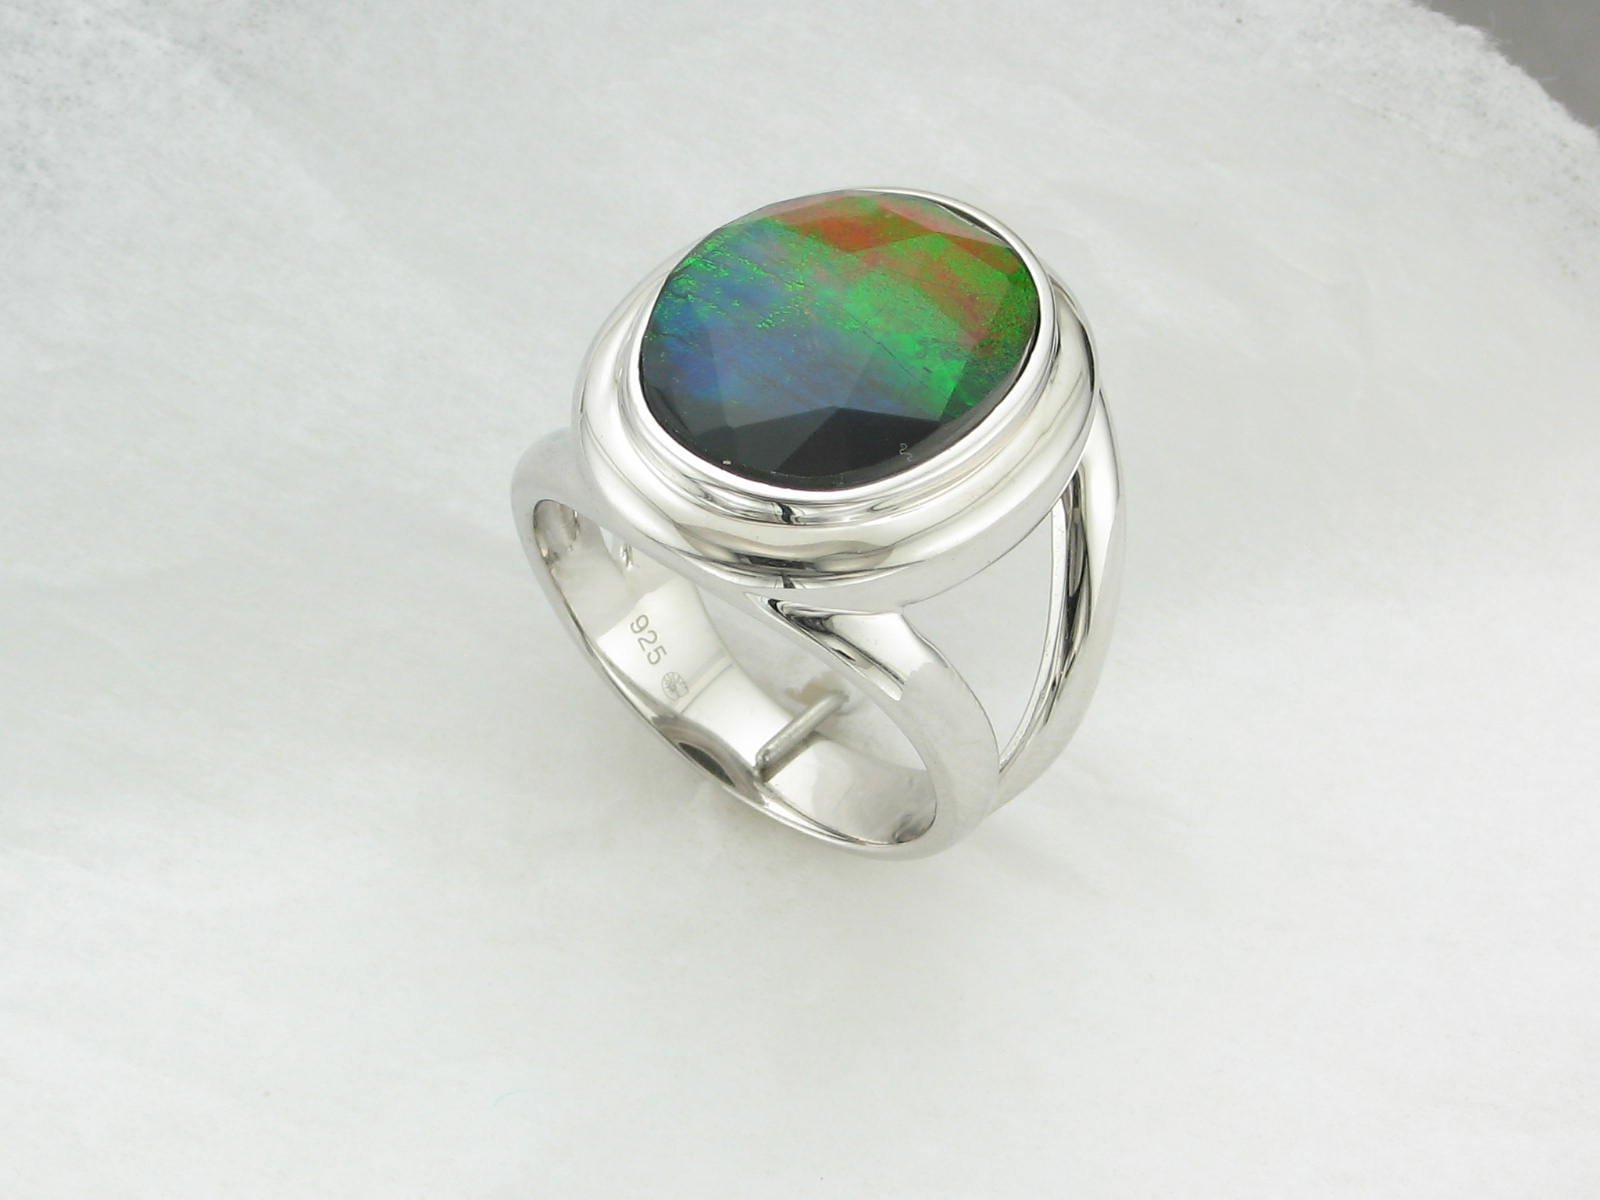 Standard Grade Ammolite Large Oval Ring set in Sterling Silver